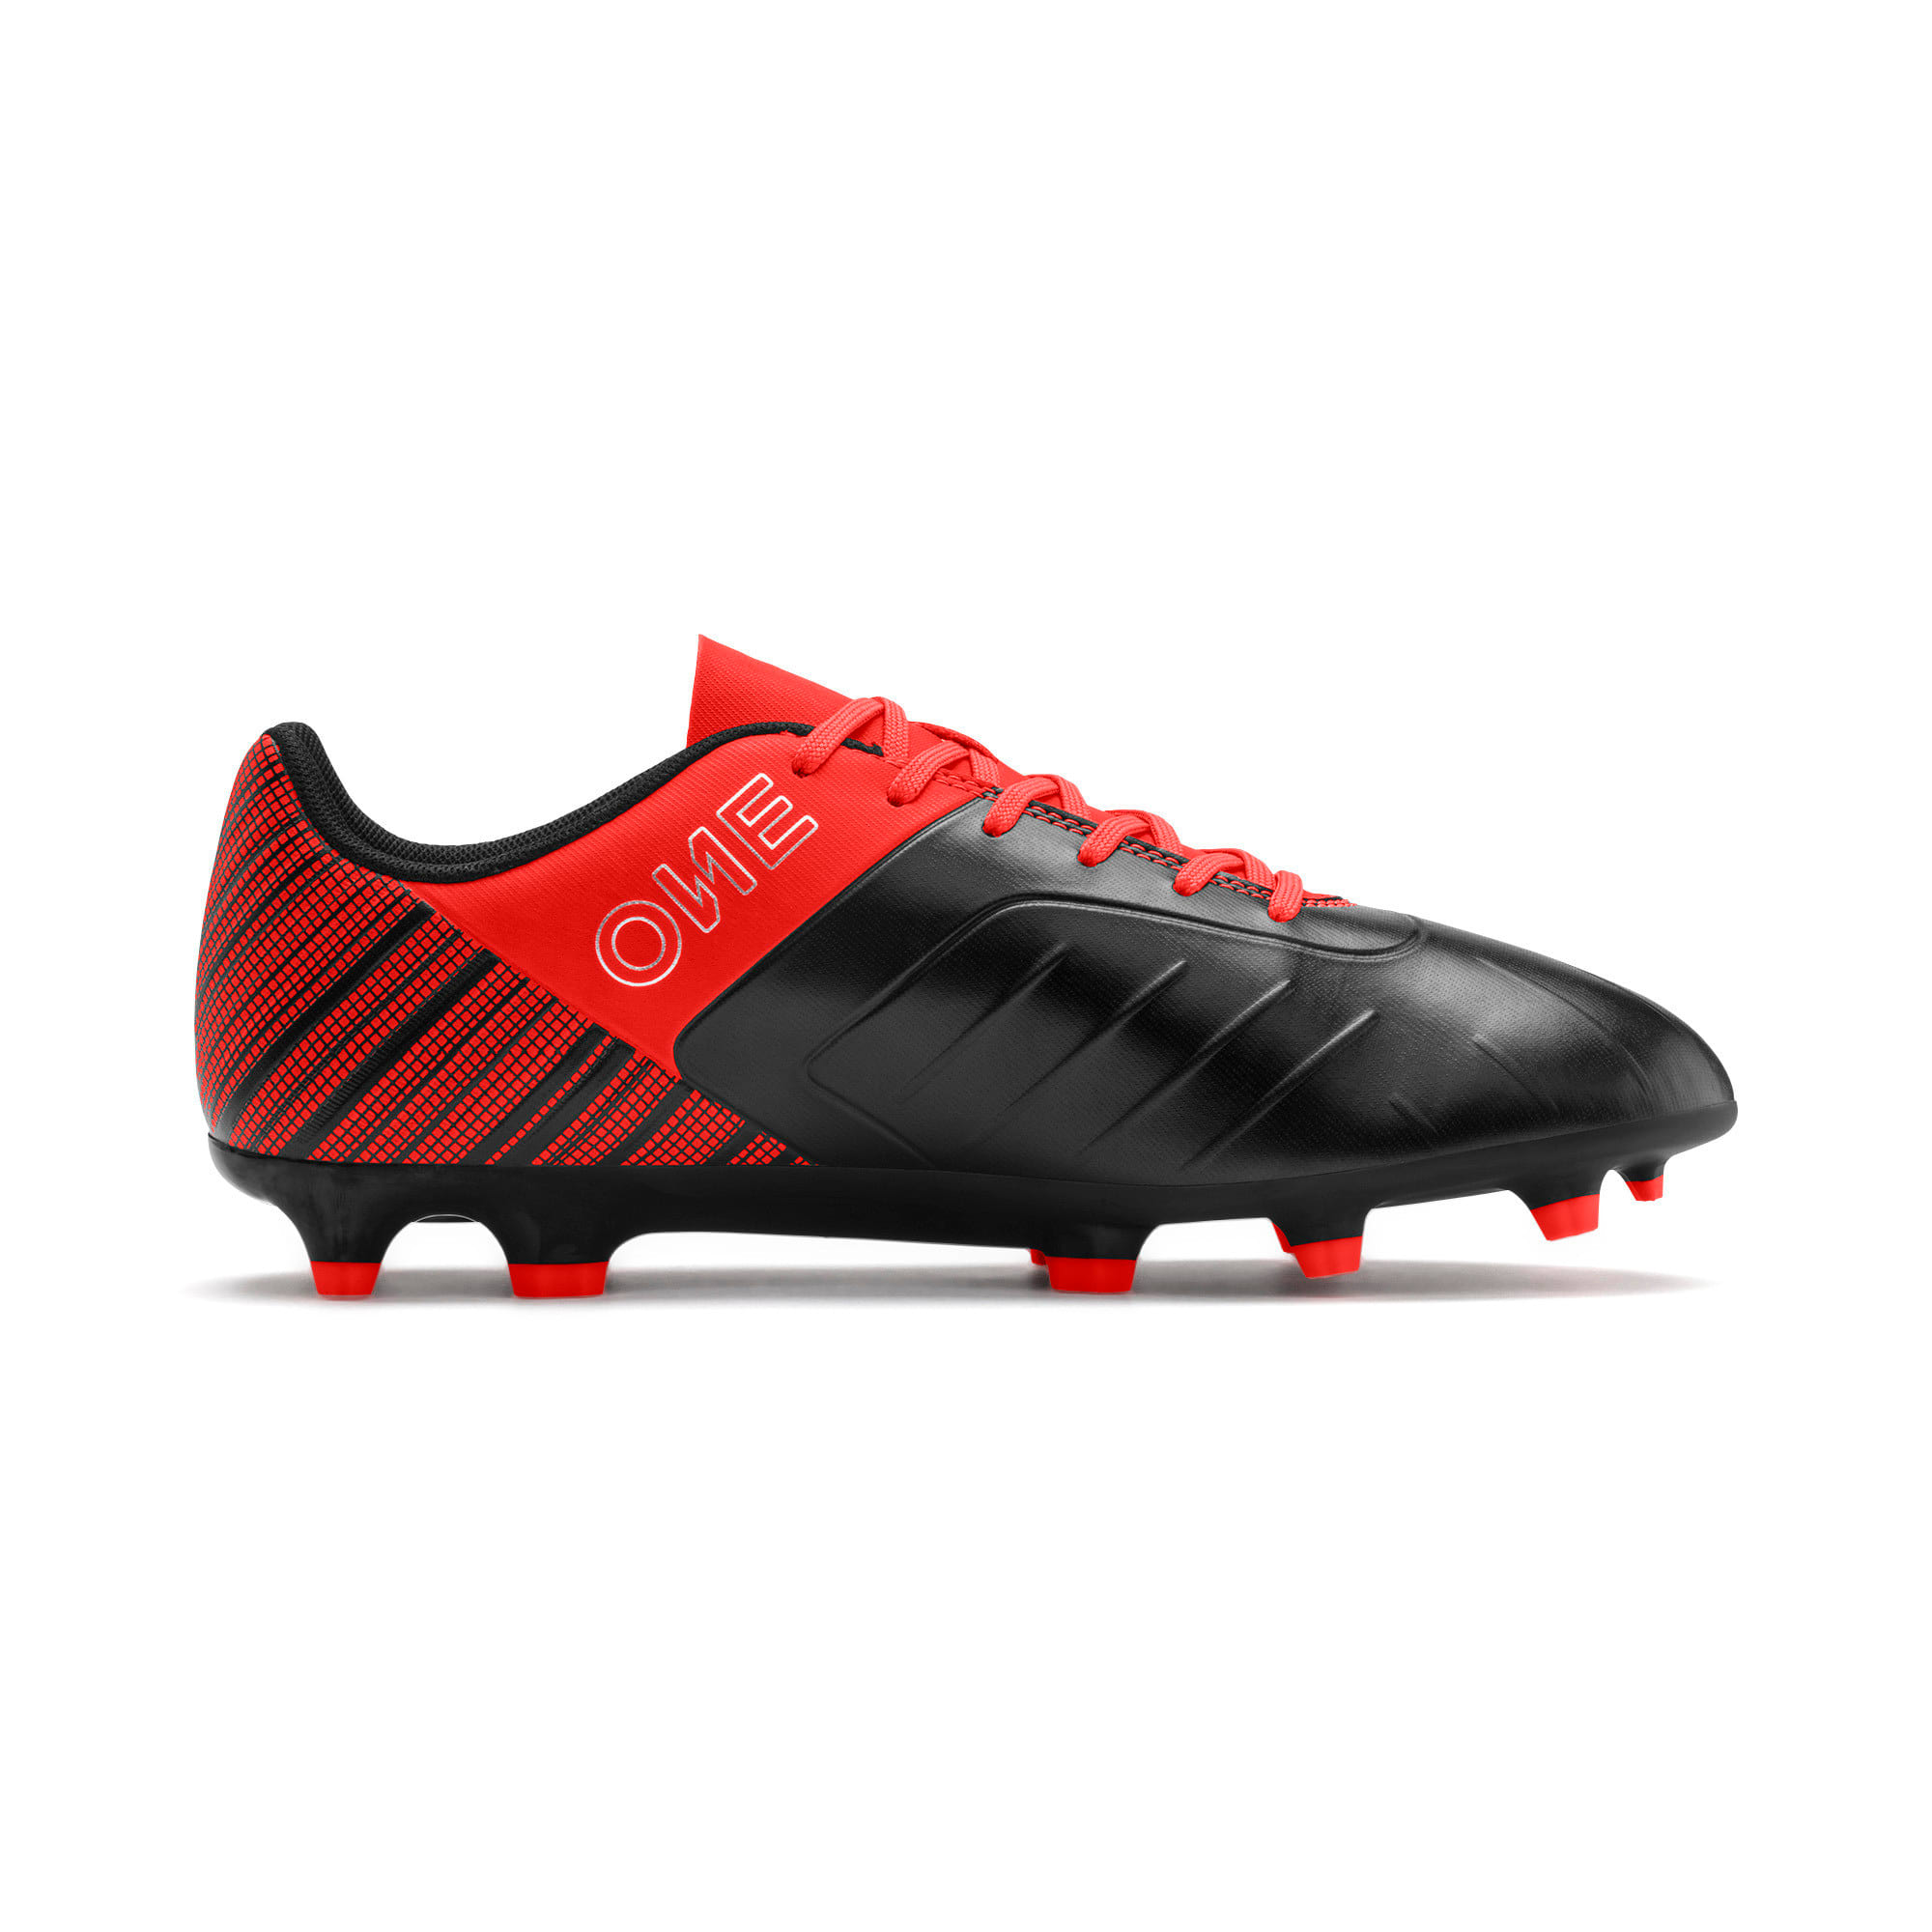 Thumbnail 6 of PUMA ONE 5.4 Men's FG/AG Football Boots, Black-Nrgy Red-Aged Silver, medium